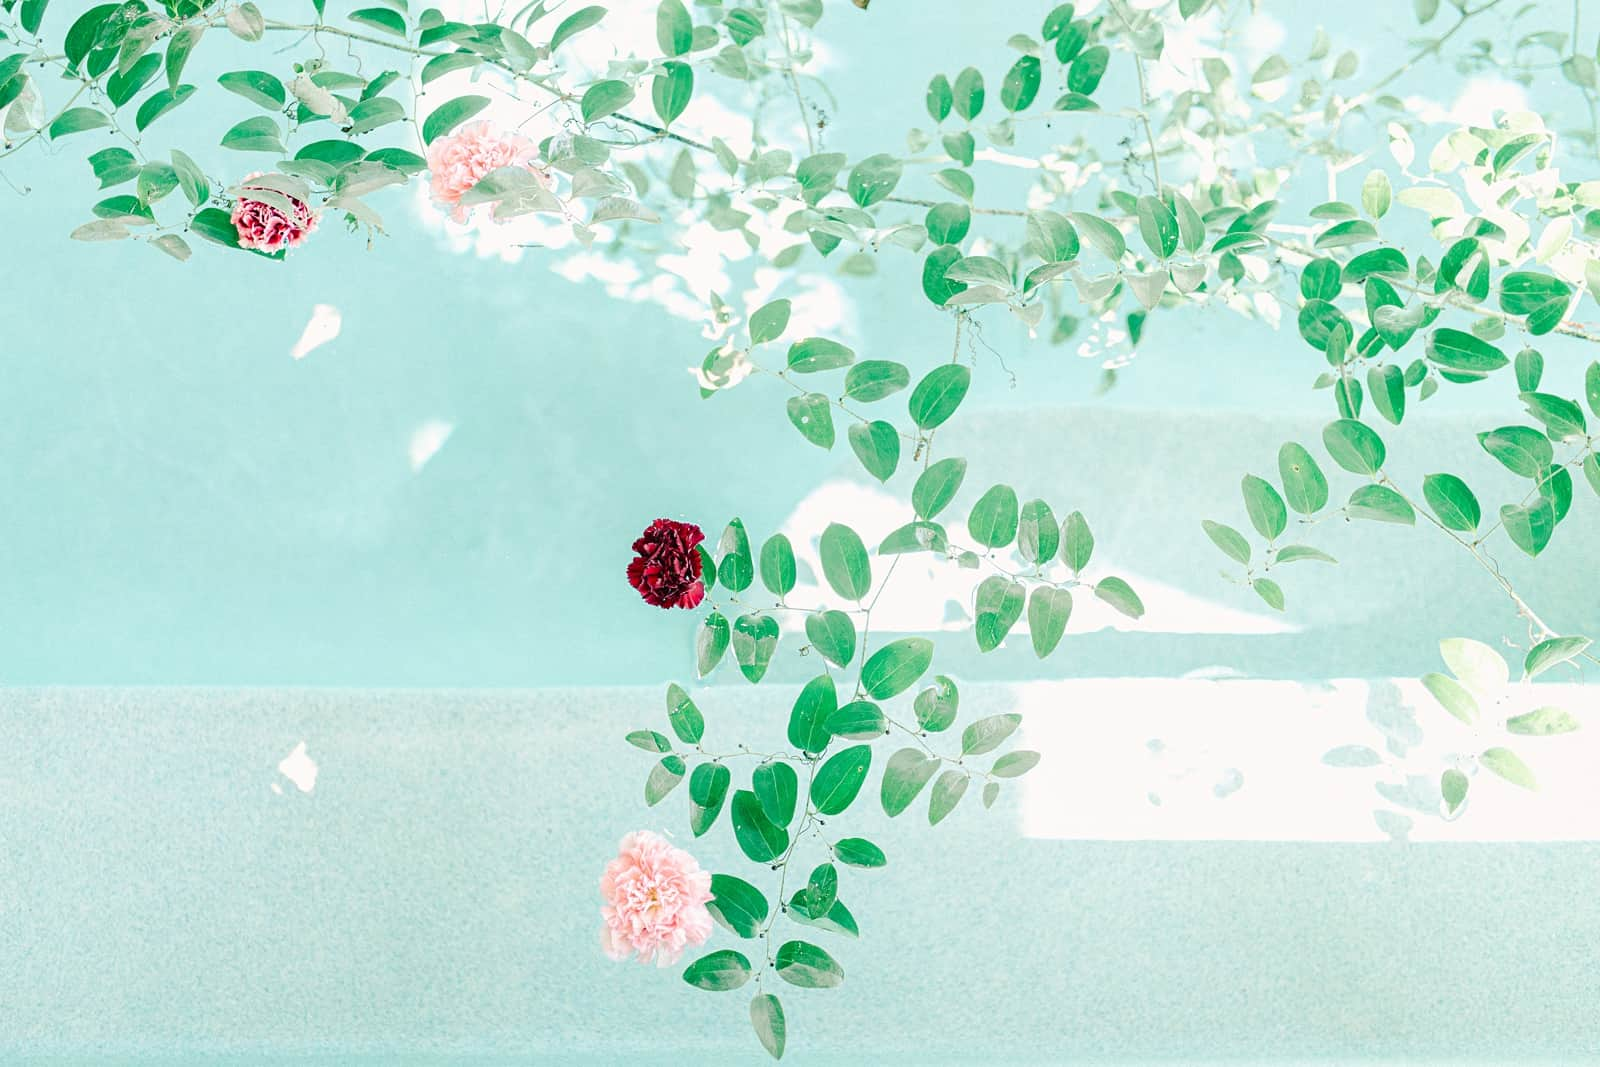 Texas pool house ceremony, floating flowers in swimming pool